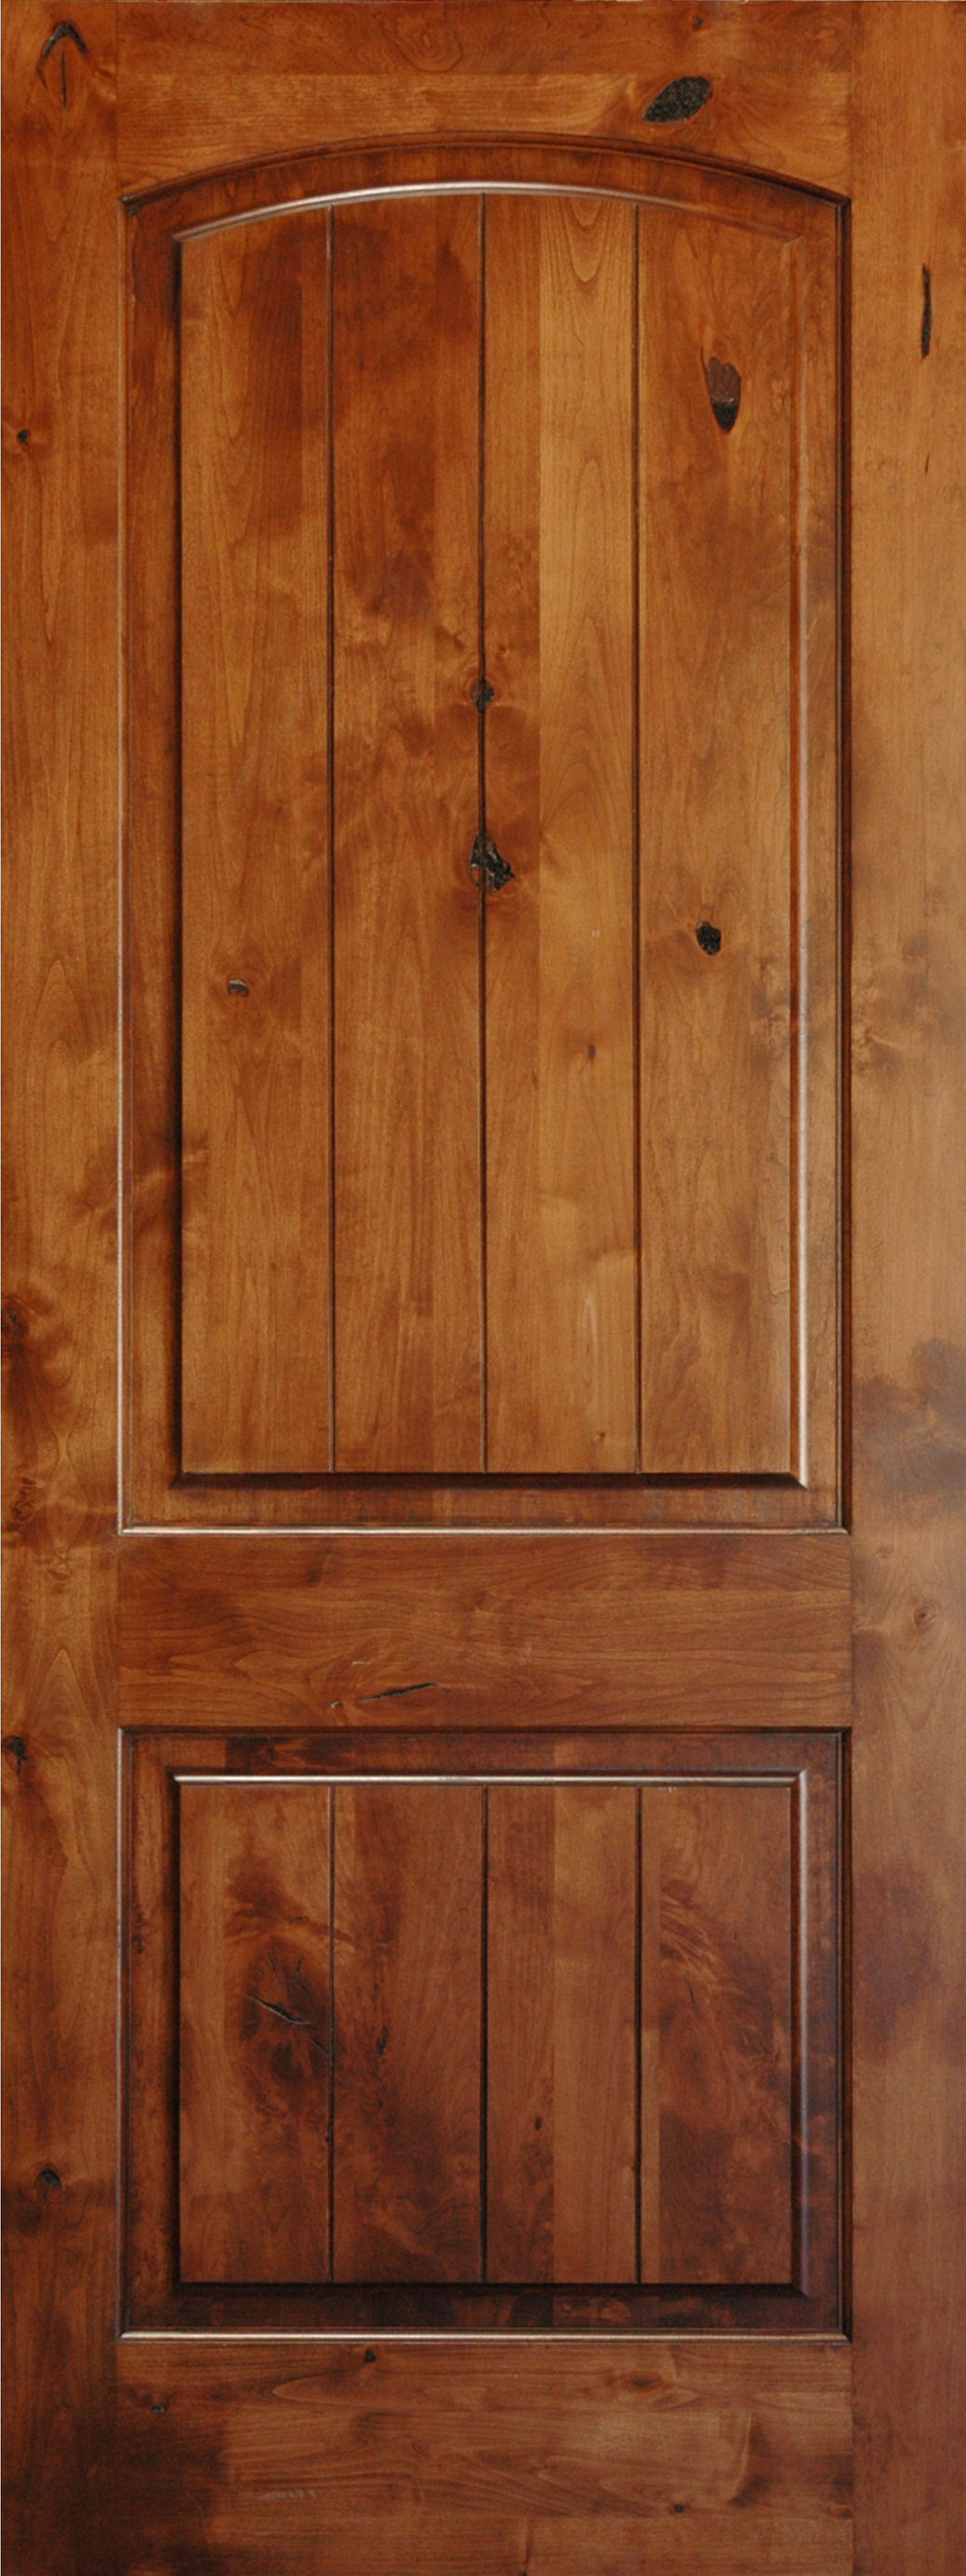 knotty alder 8u0027 vgroove arch 2panel wood interior door